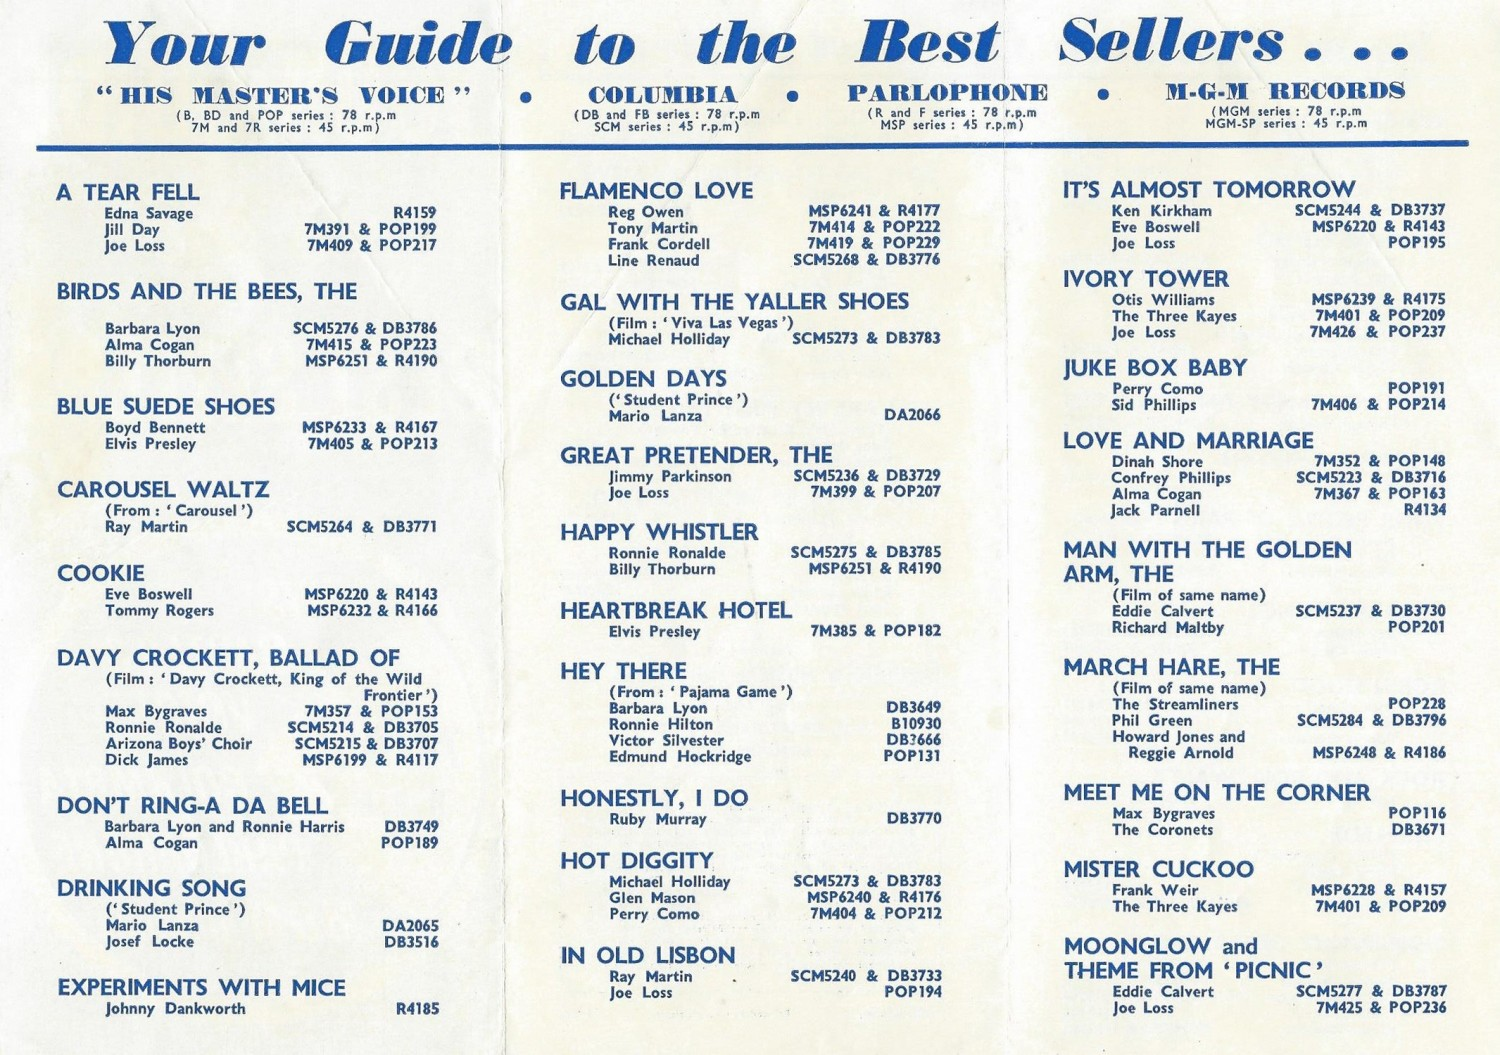 HMV Your Guide To Best Sellers 1956-06 (Alan White) 02